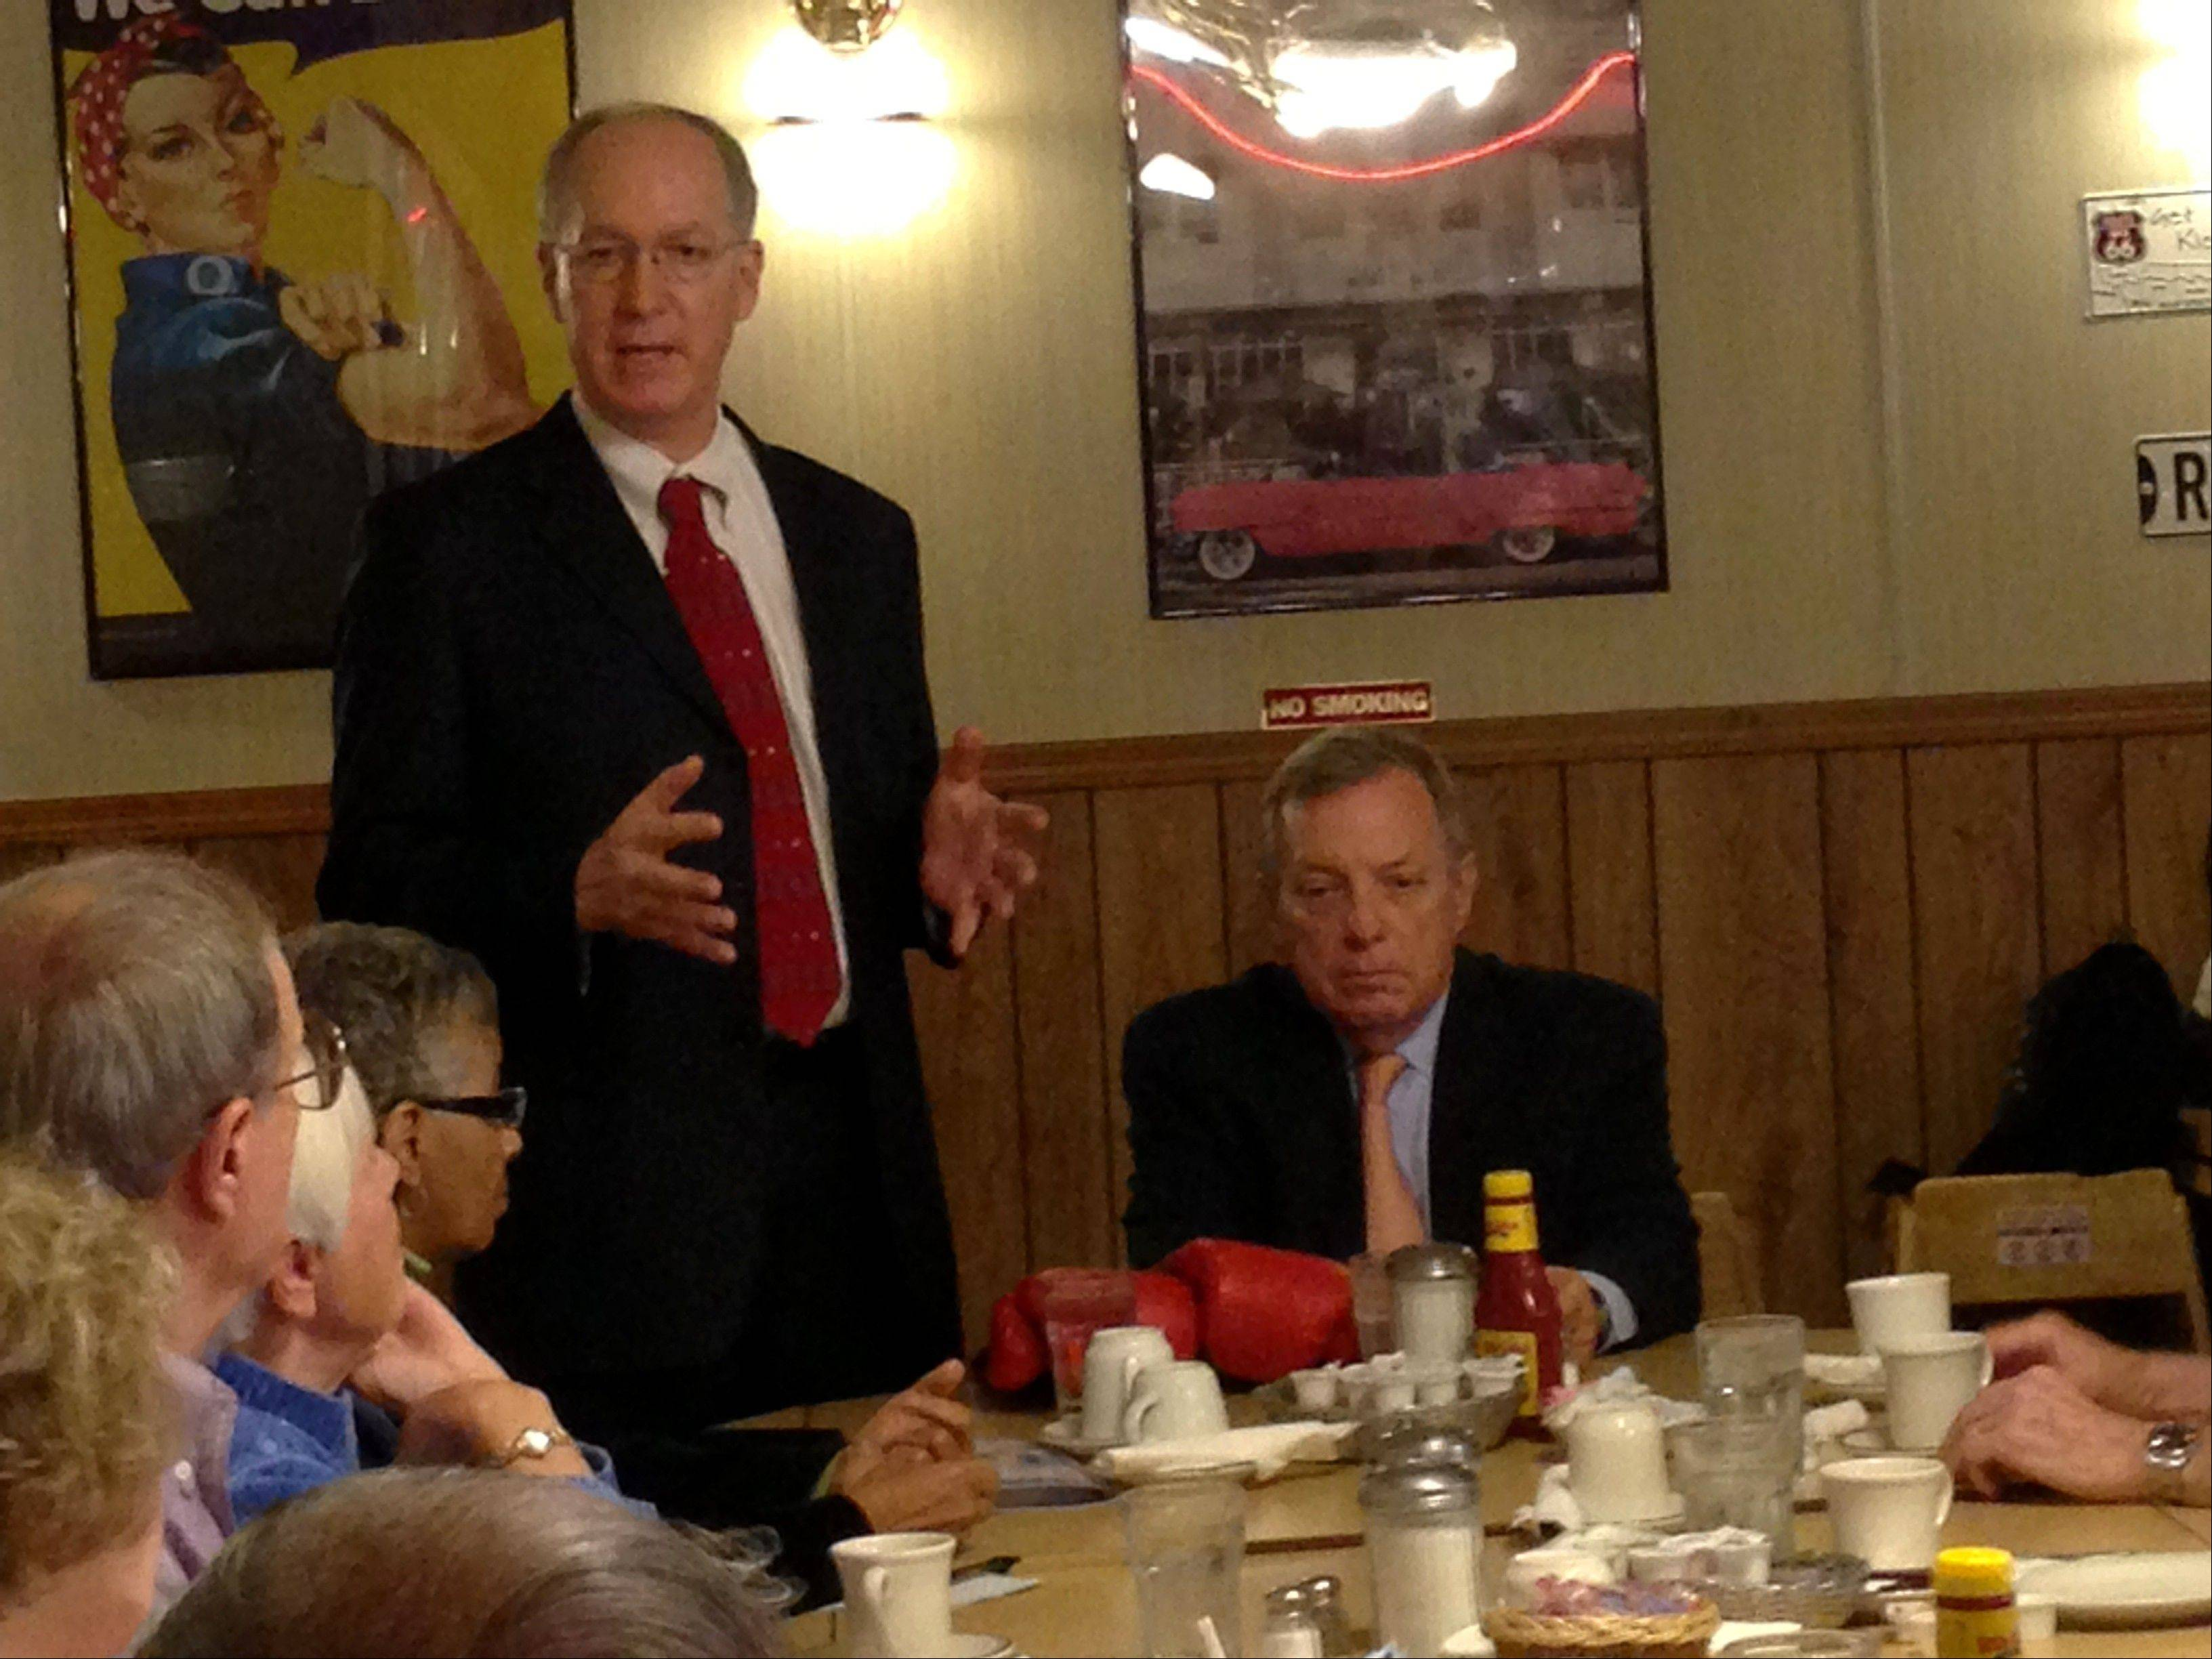 Bill Foster, left, and Sen. Dick Durbin met with senior citizens in Joliet Friday to discuss the future of Medicare and Social Security.